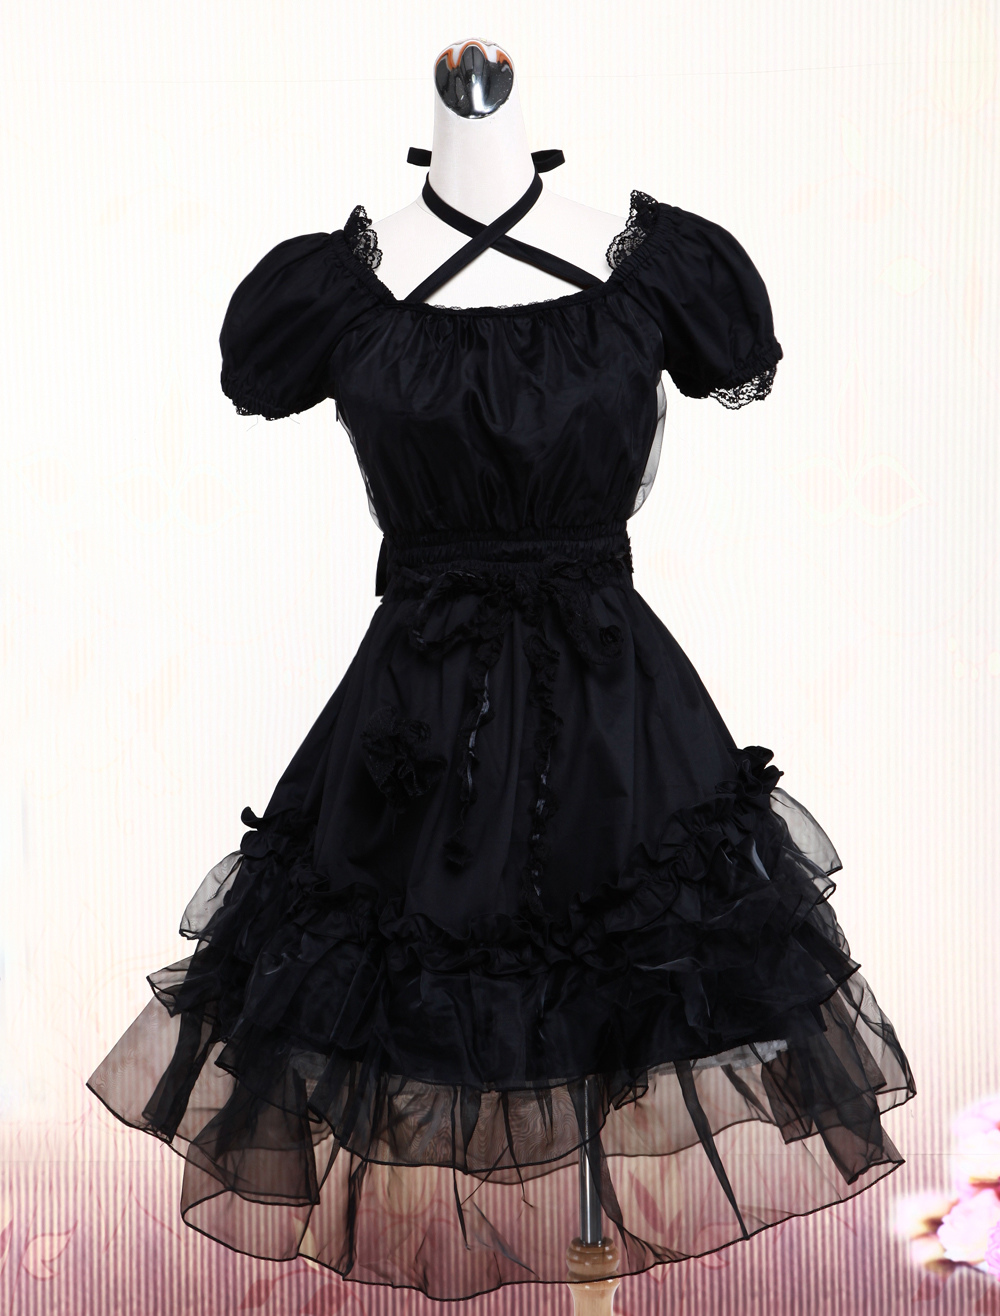 Pure Black Lolita One-piece Dress Short Sleeves Lace Trim Neck Straps